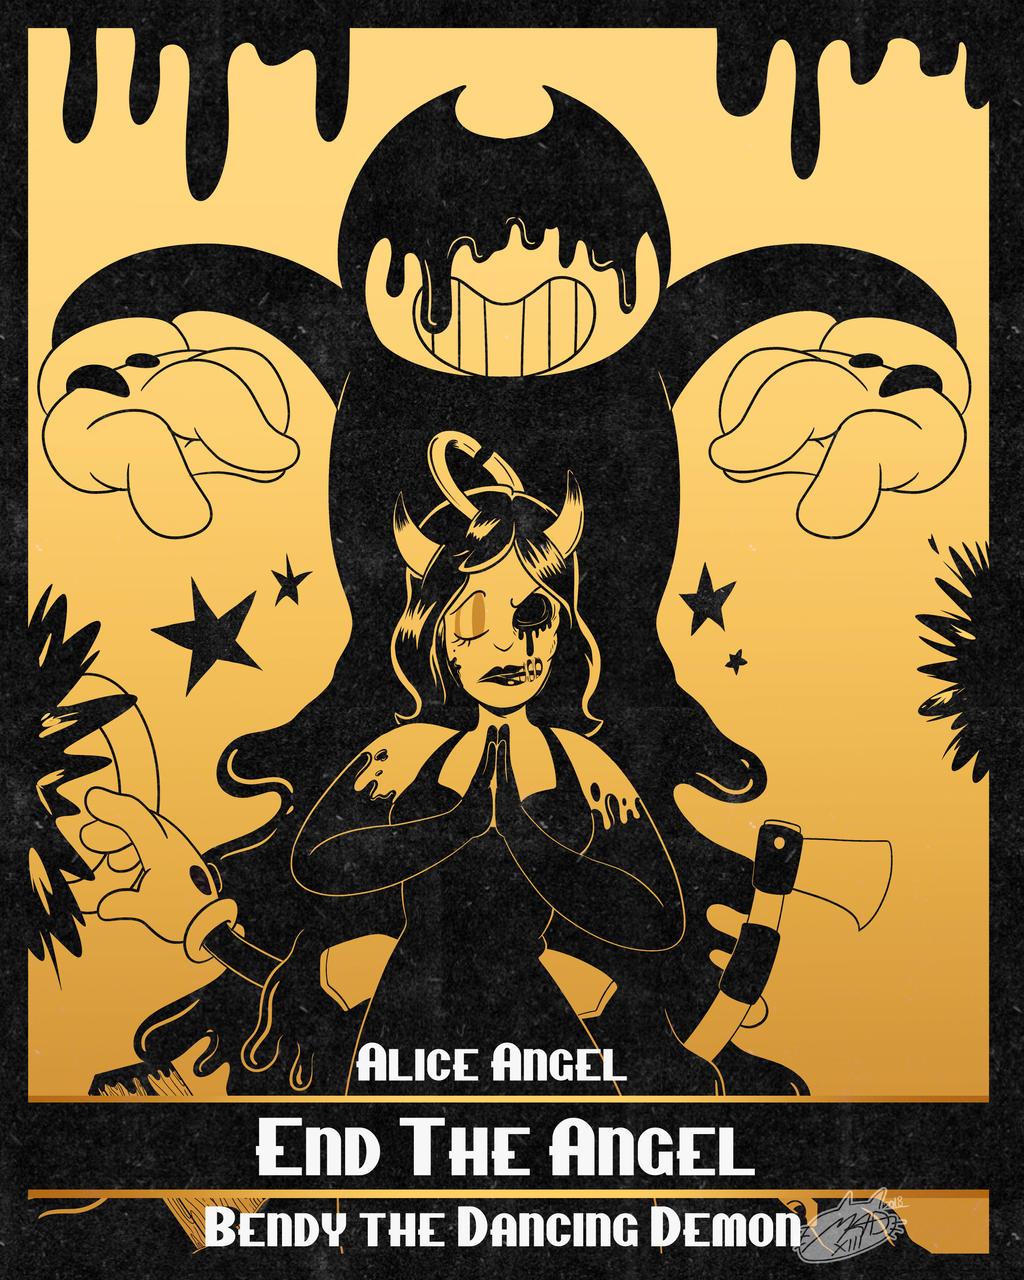 Bendy Chapter 4 by MadArtsXIII on DeviantArt